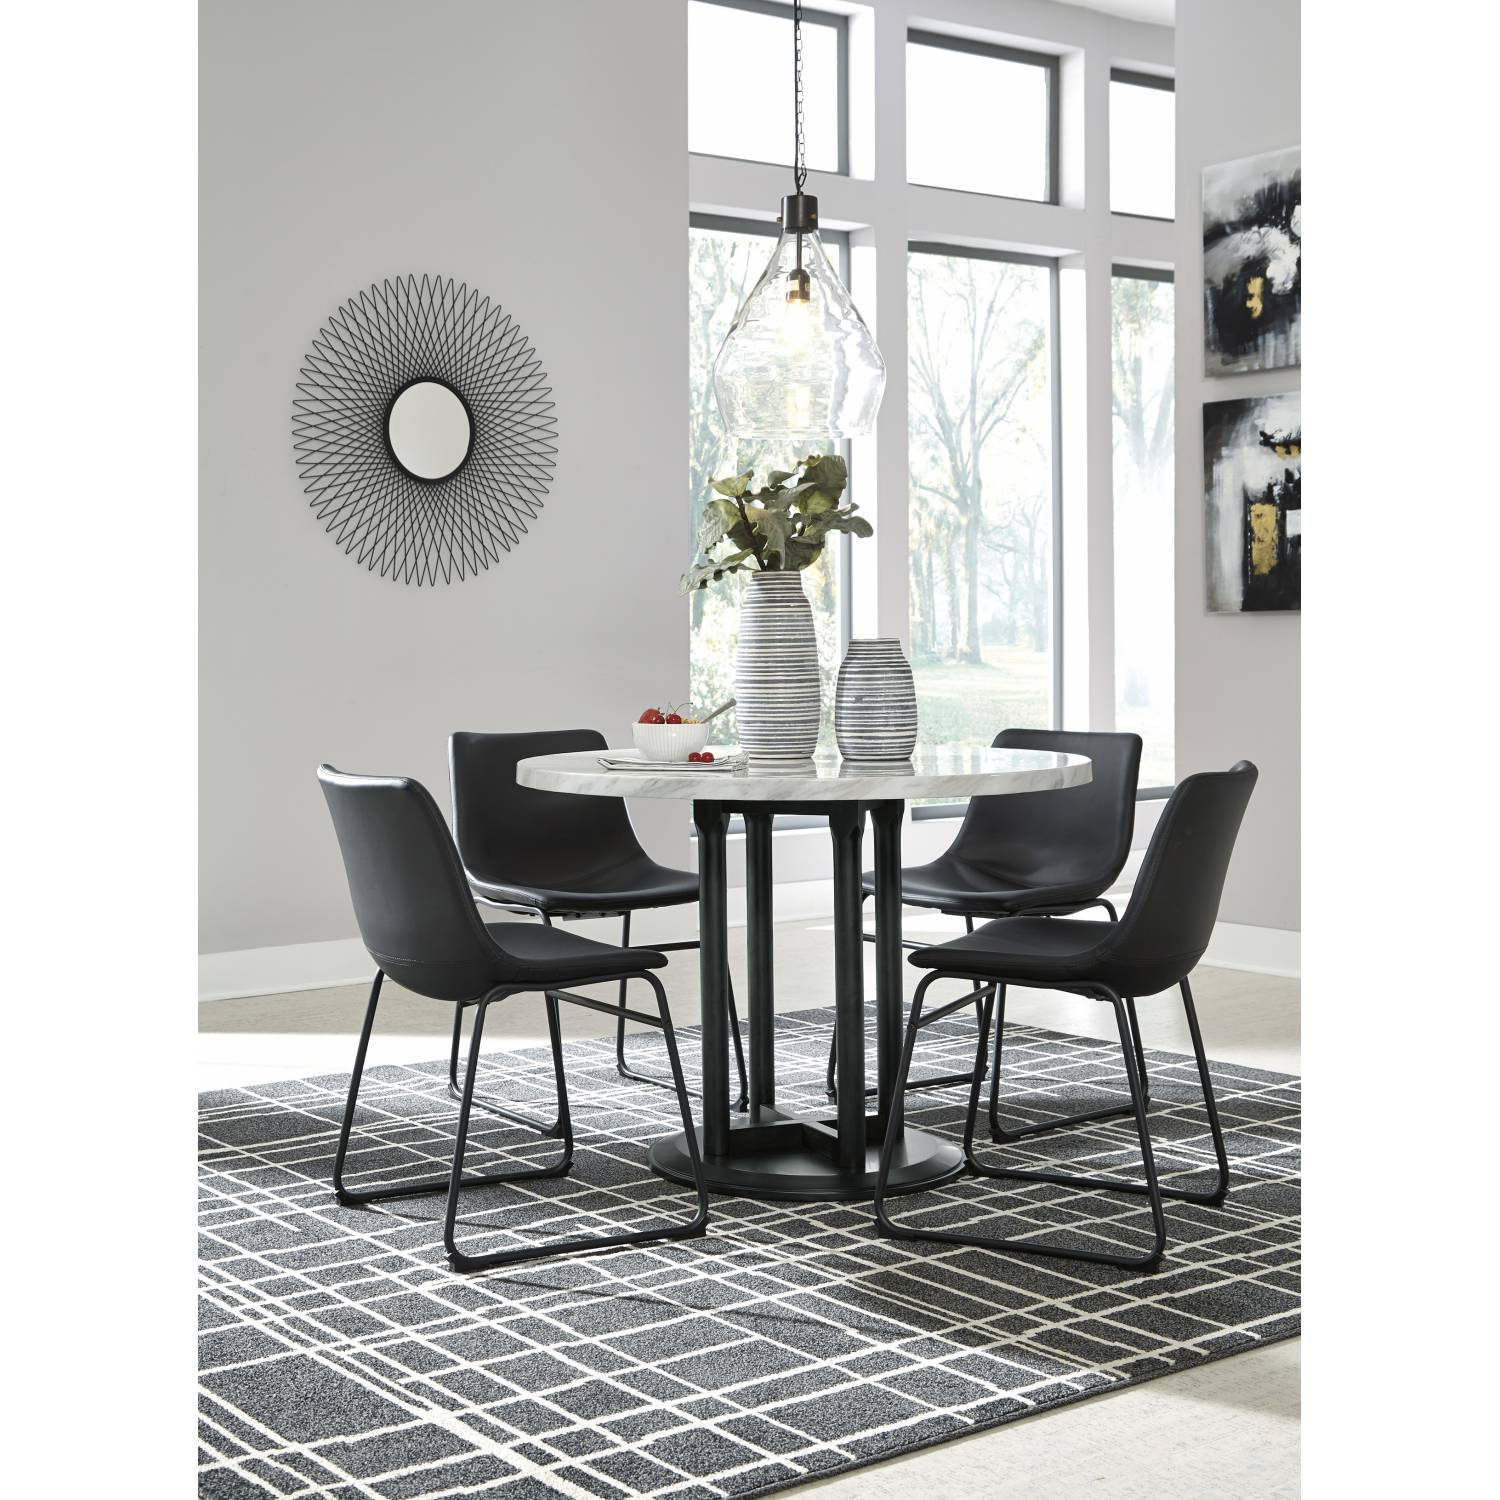 D372 14 06 4 5pc Sets Round Dining Room Table 4 Side Chairs